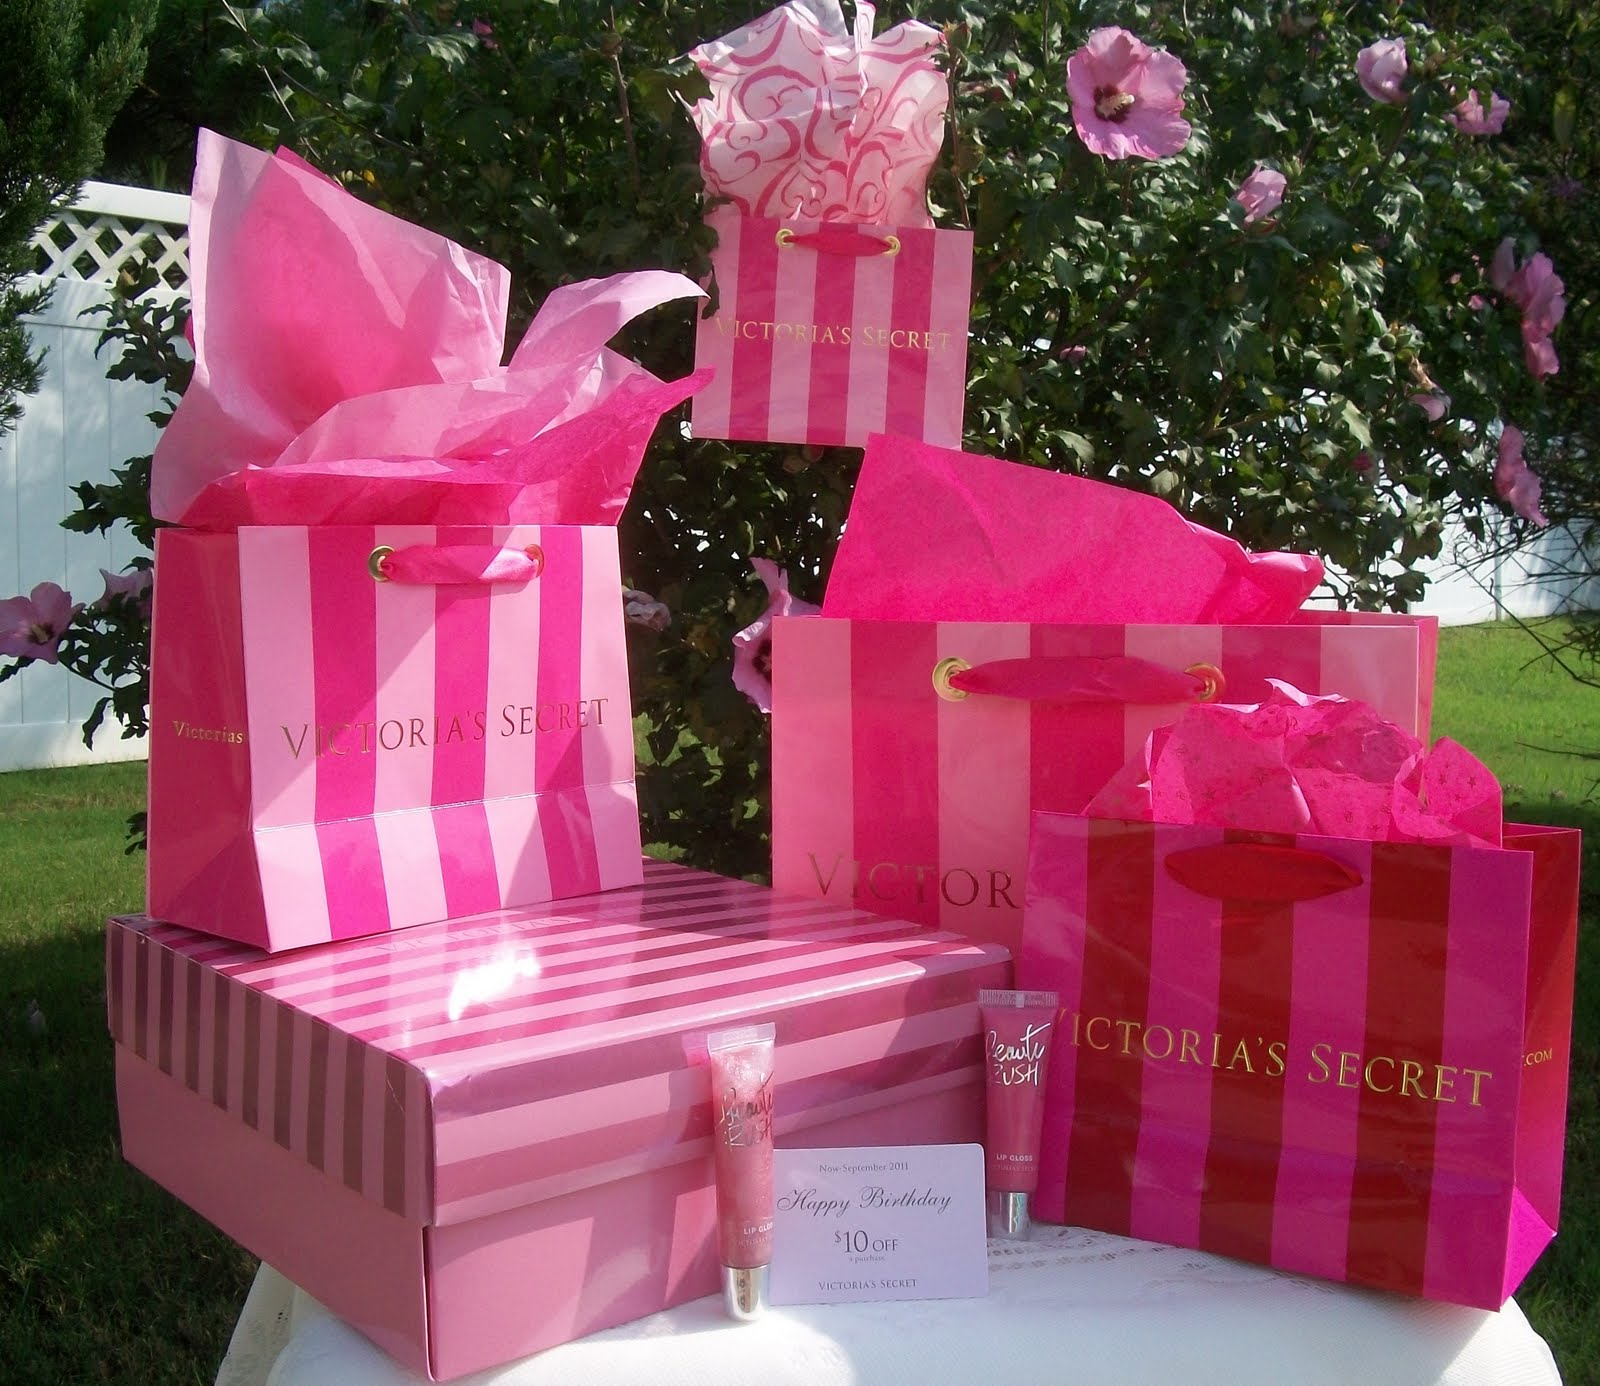 Victorias Secret Almost Free Luxuries